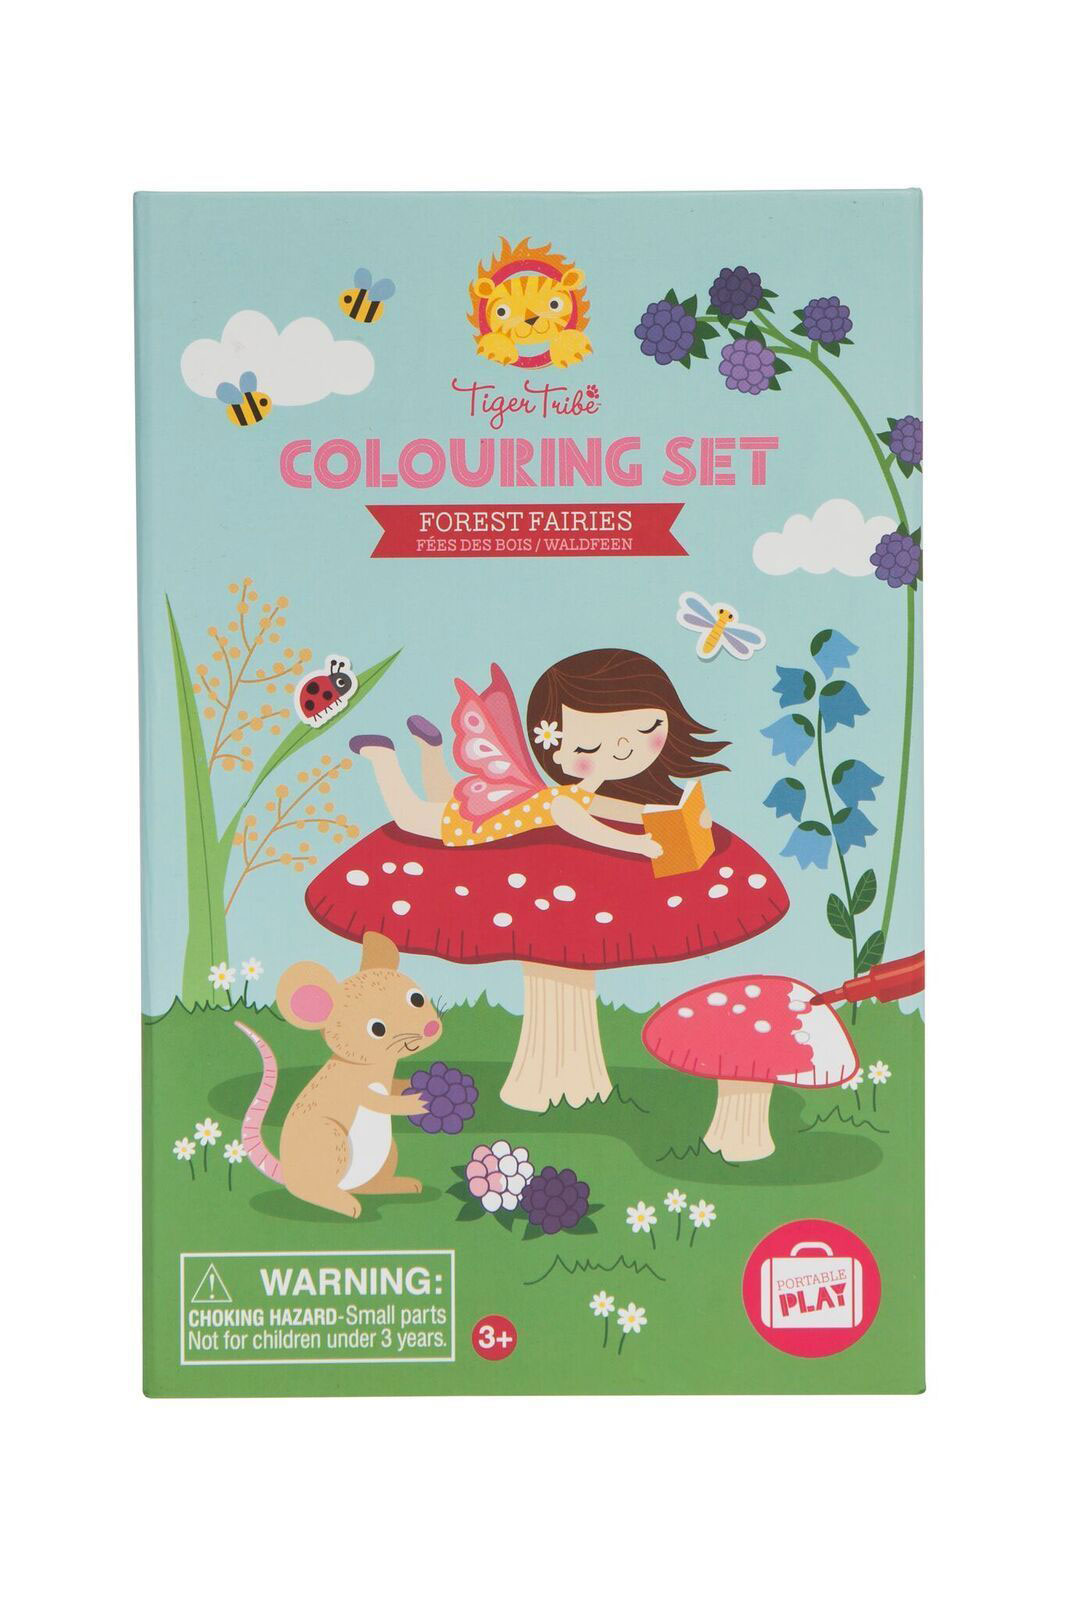 Colouring set - Forest Fairies by Tiger Tribe